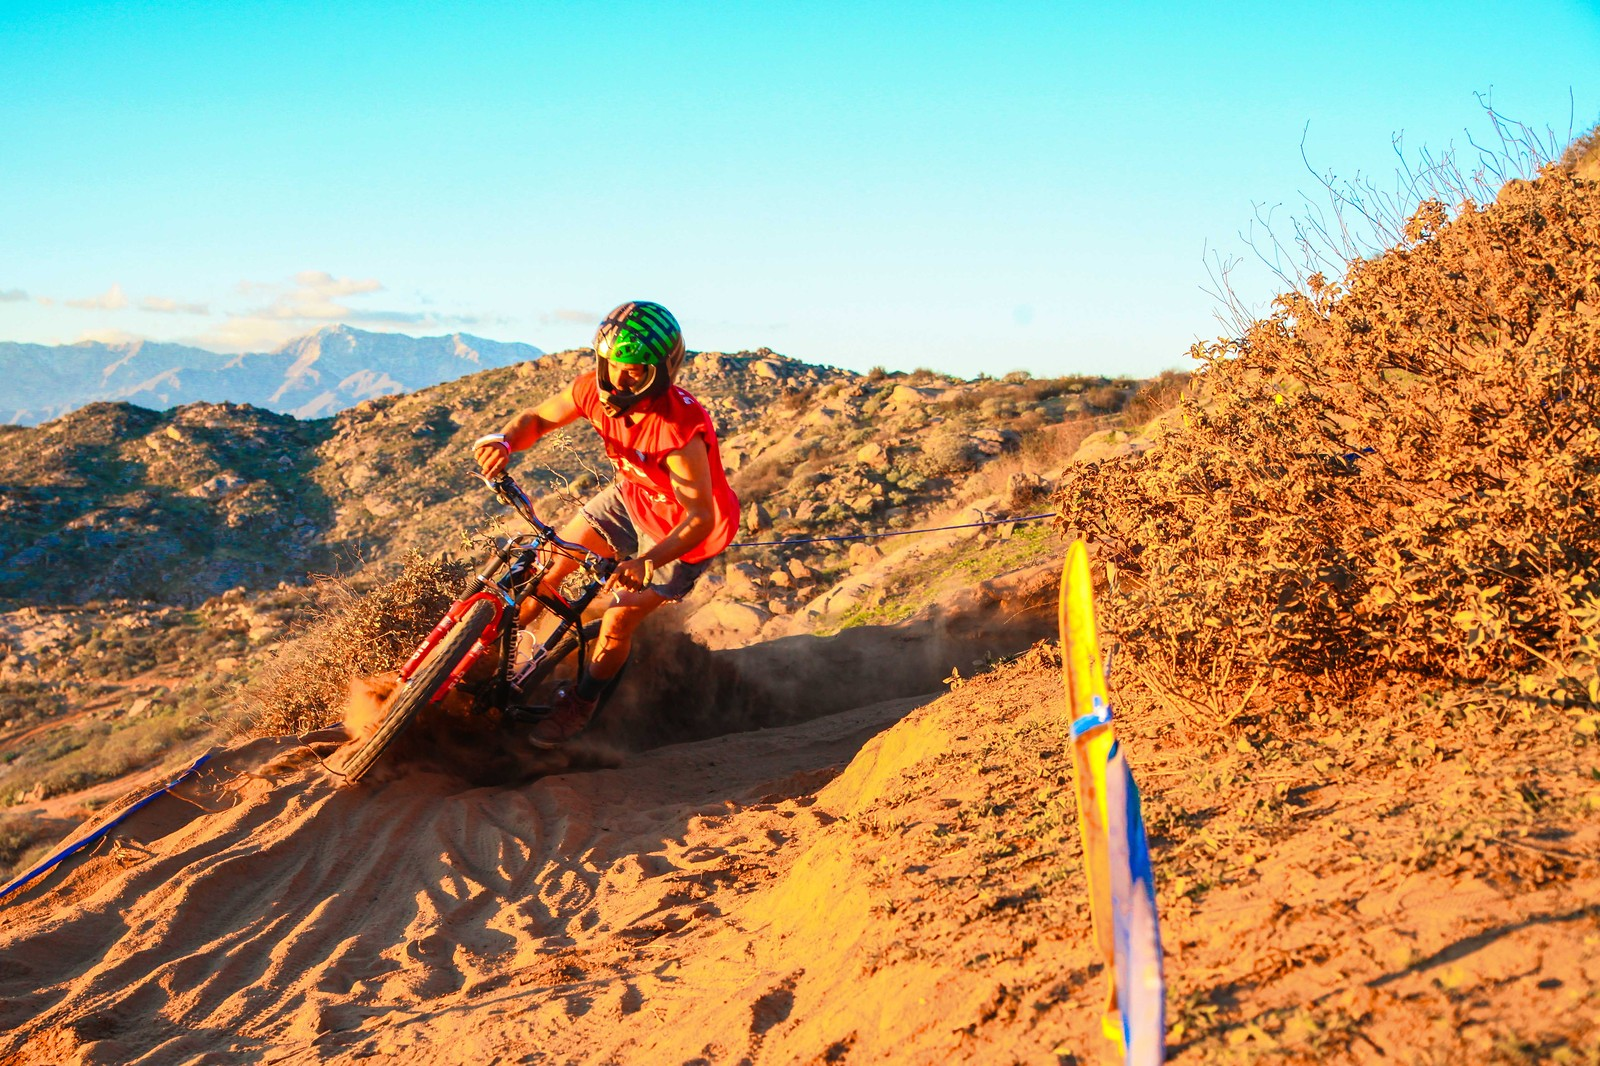 Showing them how its done! - GnarHuck - Mountain Biking Pictures - Vital MTB